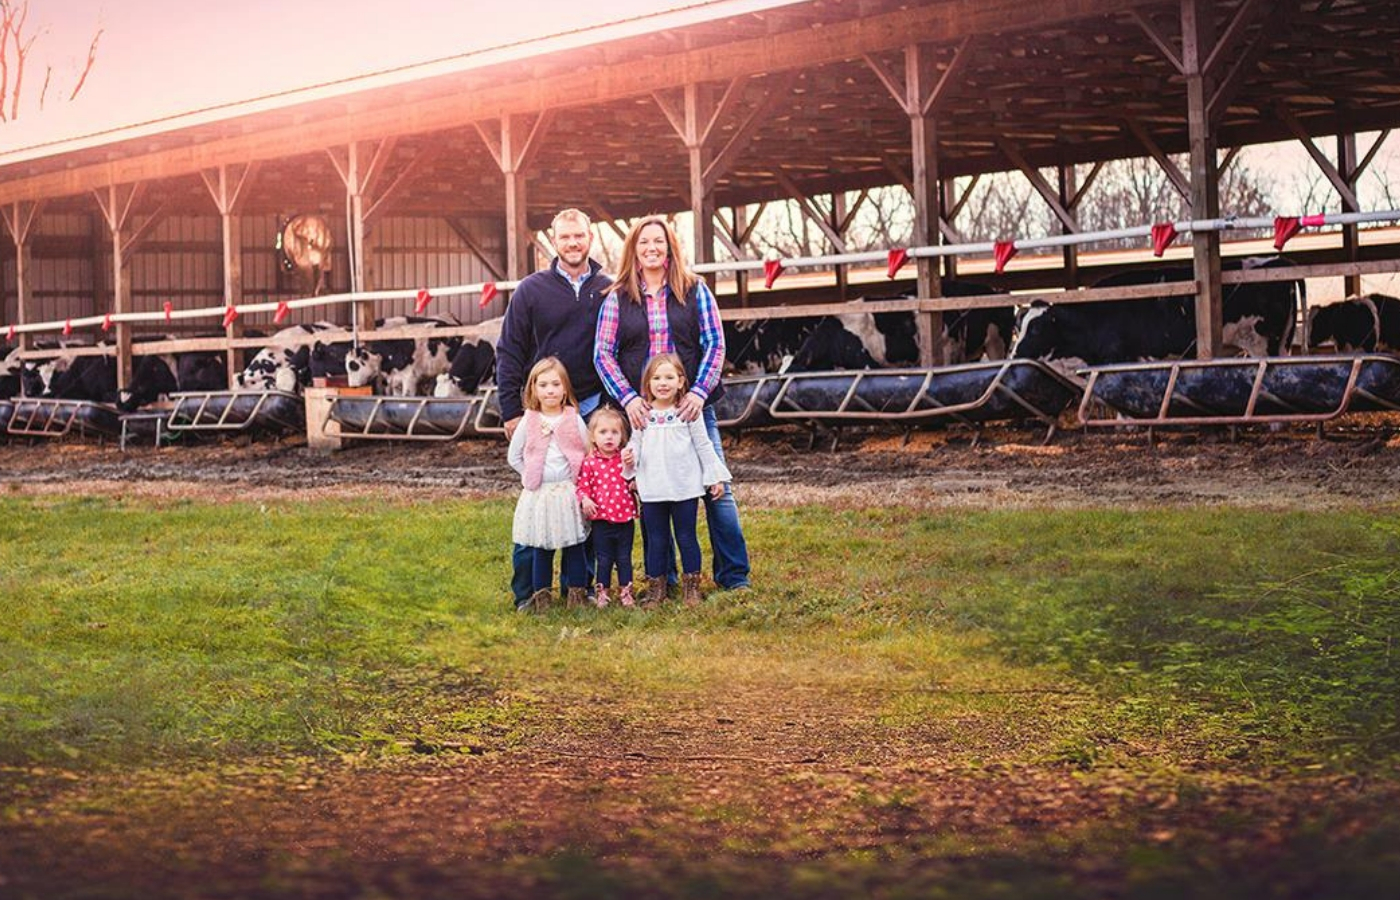 The Anderson family on their local Ohio farm.